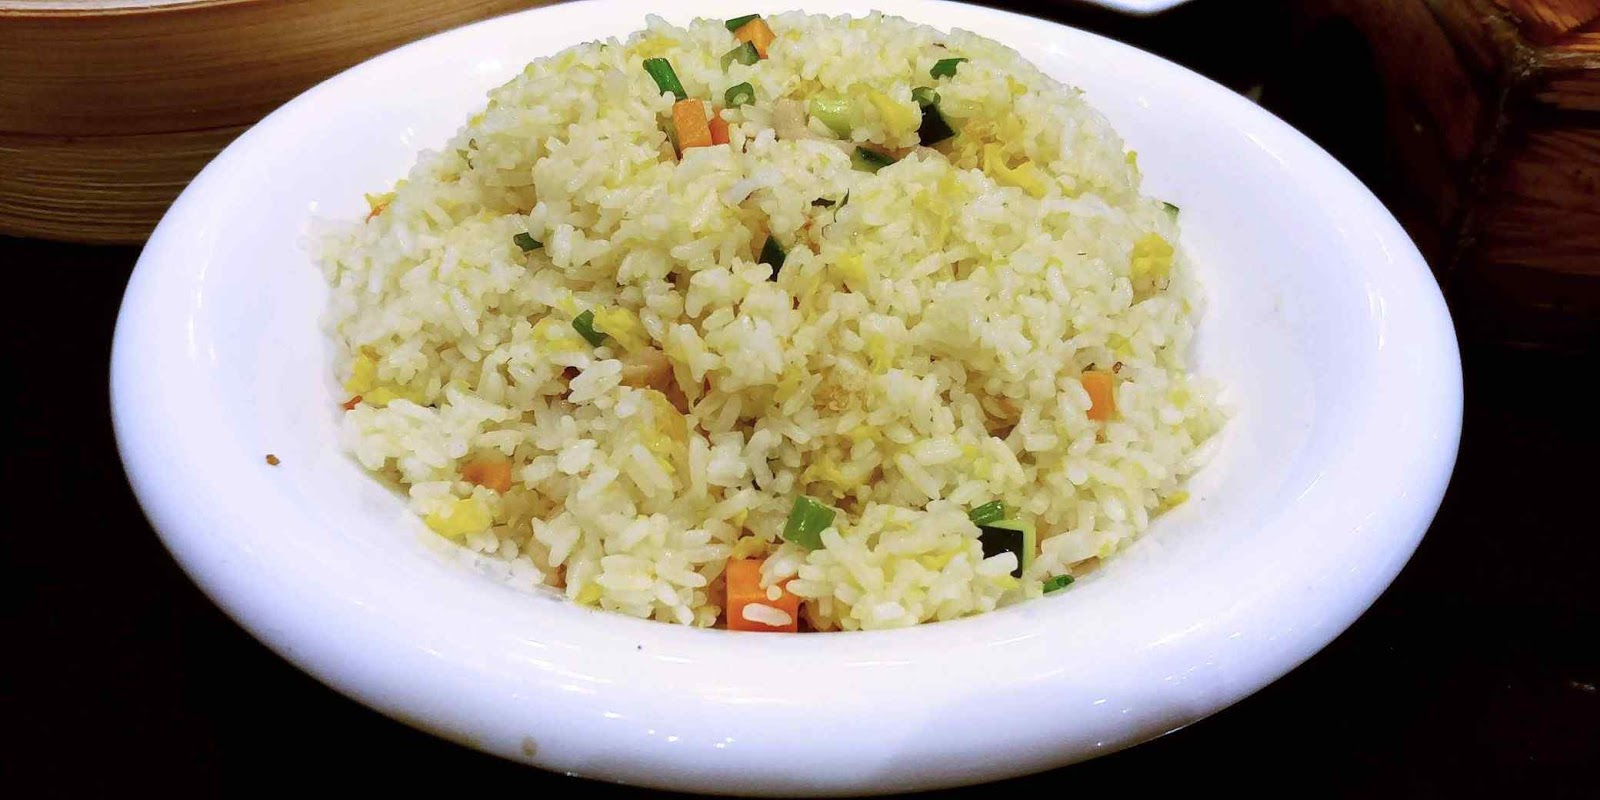 Lugang Cafe's Golden Fried Rice with Egg and Shredded Pork